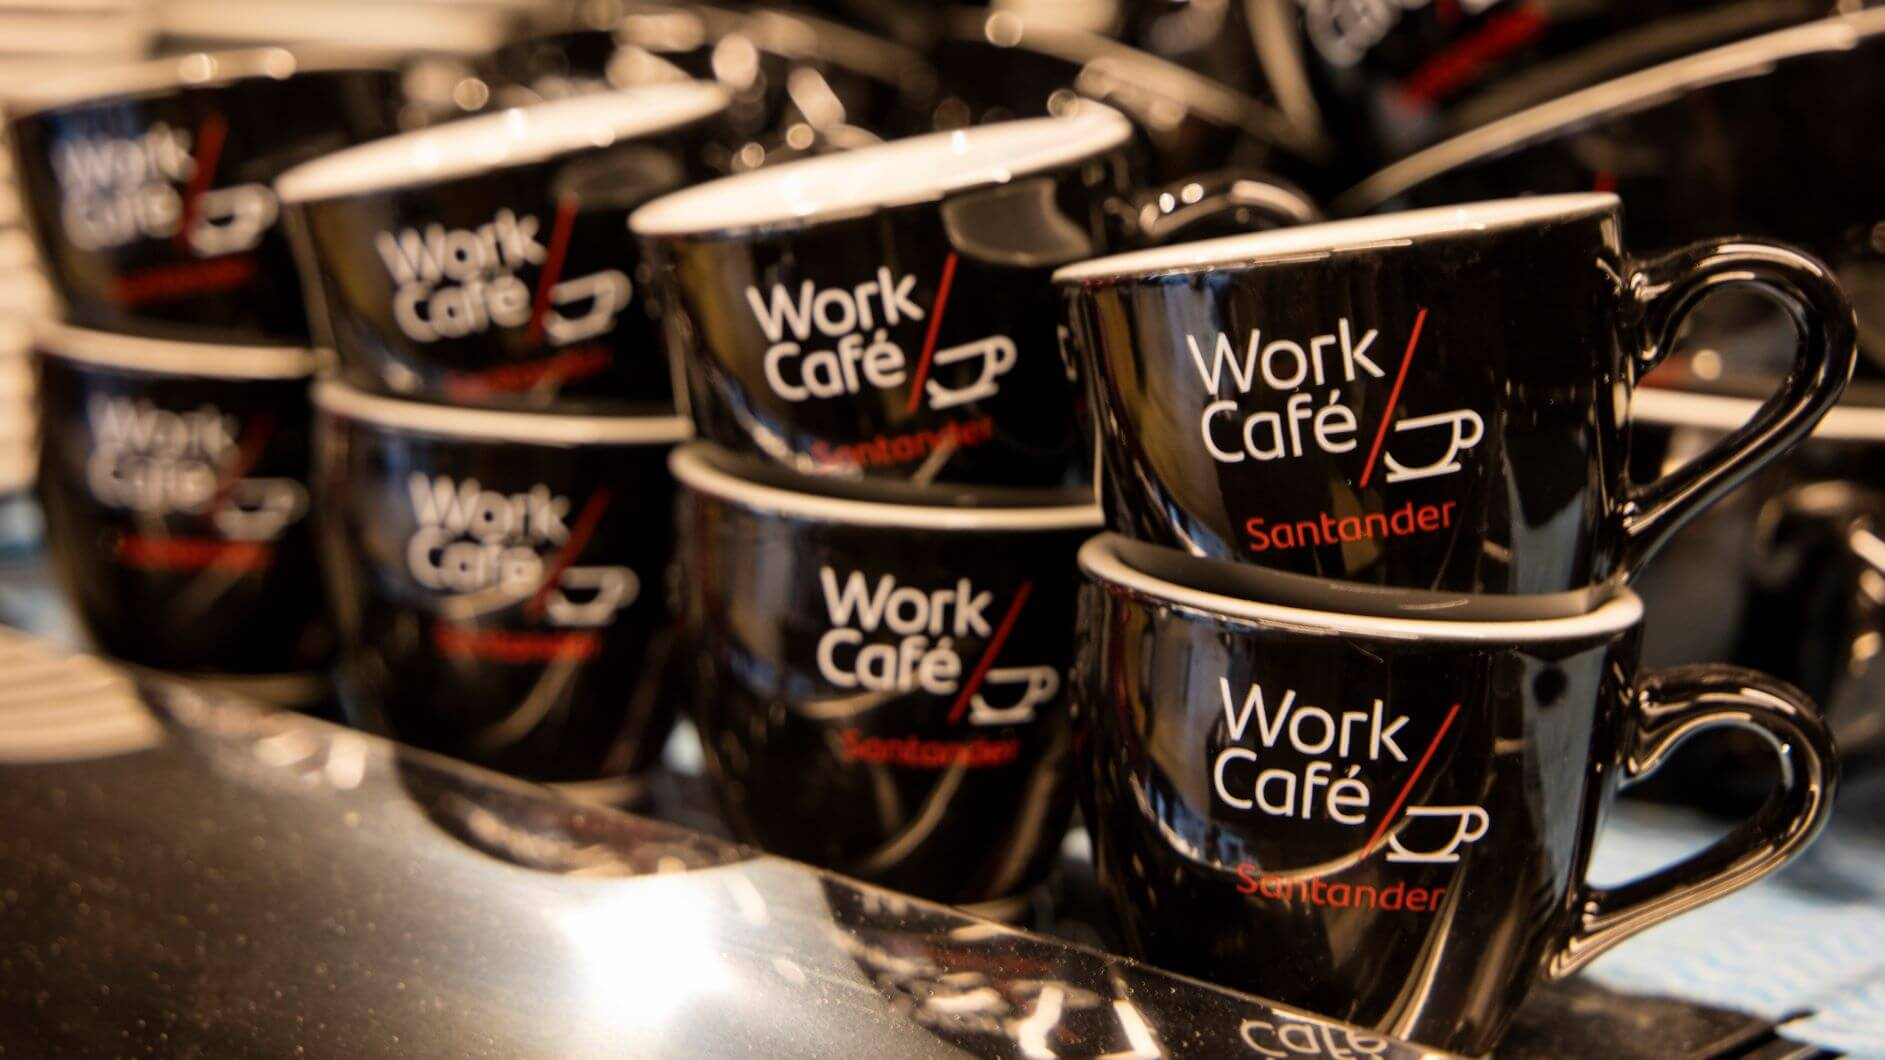 Santander Opens First UK 'Work Cafe' For Small Businesses